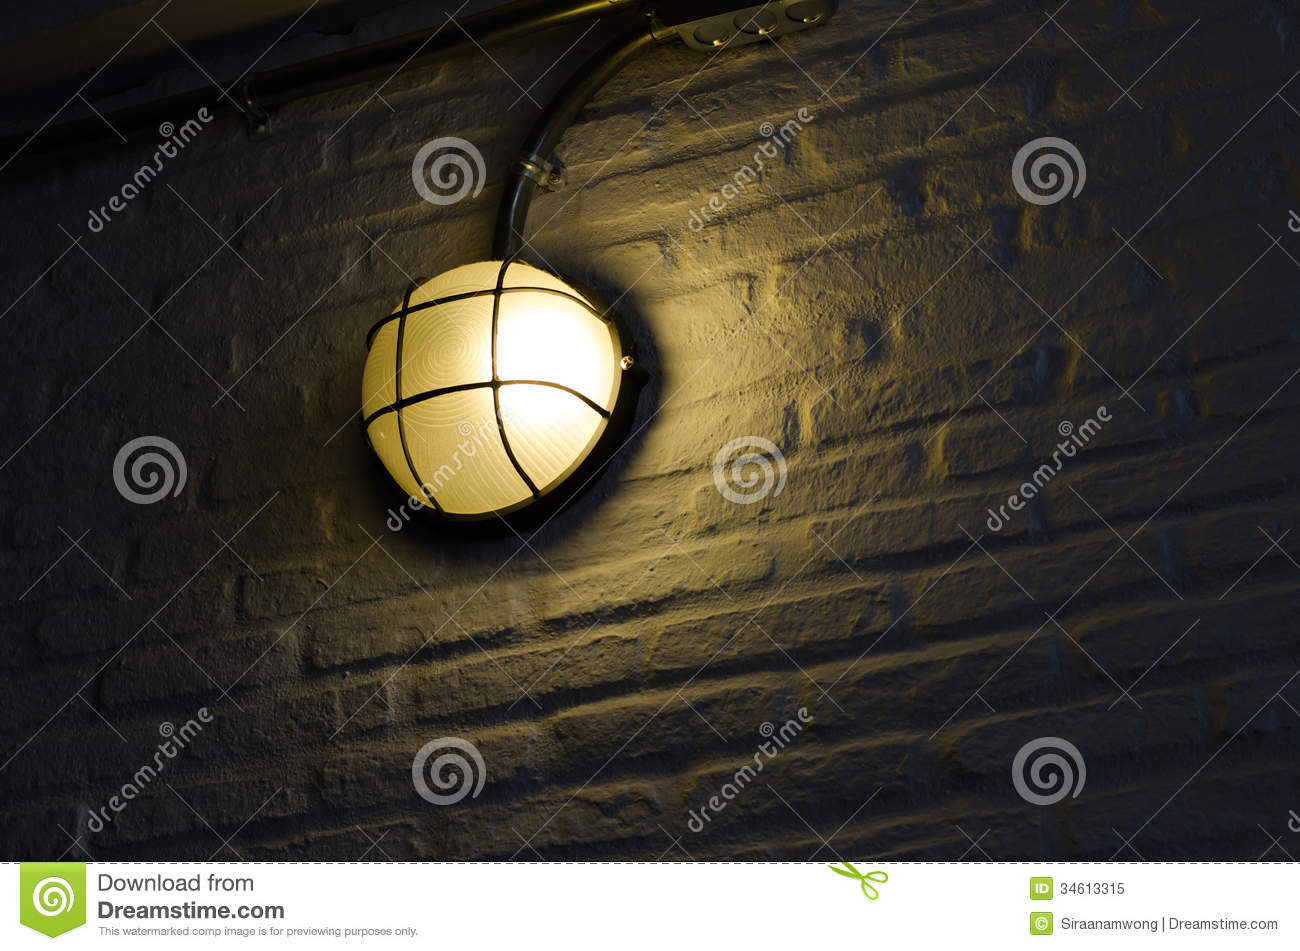 Pathway or wall light for building or house stock image image of pathway or wall light for building or house stock image image of bright indoor 34613315 mozeypictures Images